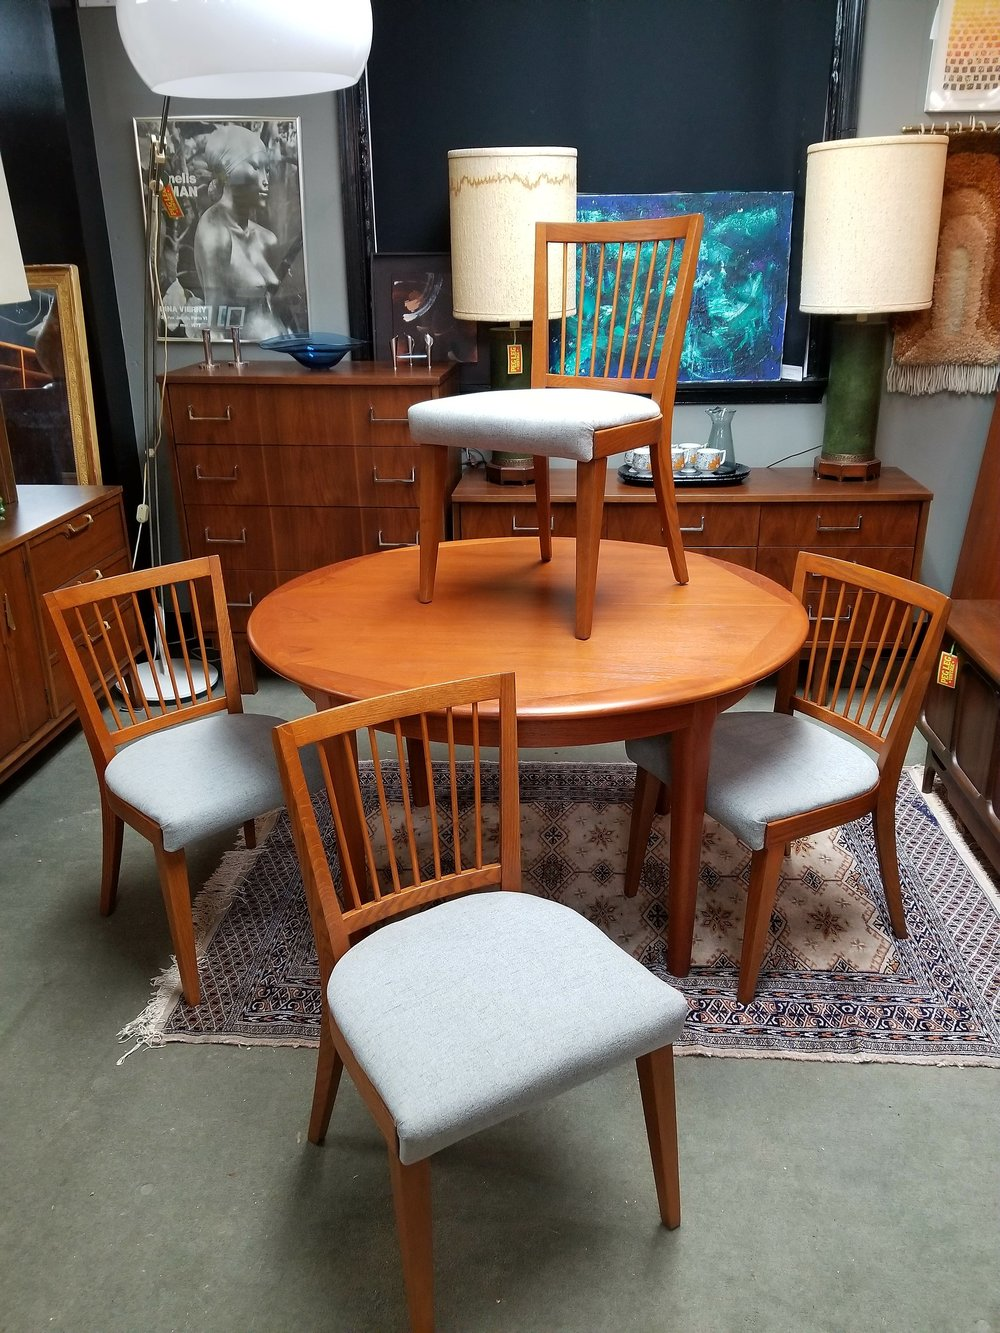 Set of 4 Mid-Century Modern spindleback dining chairs